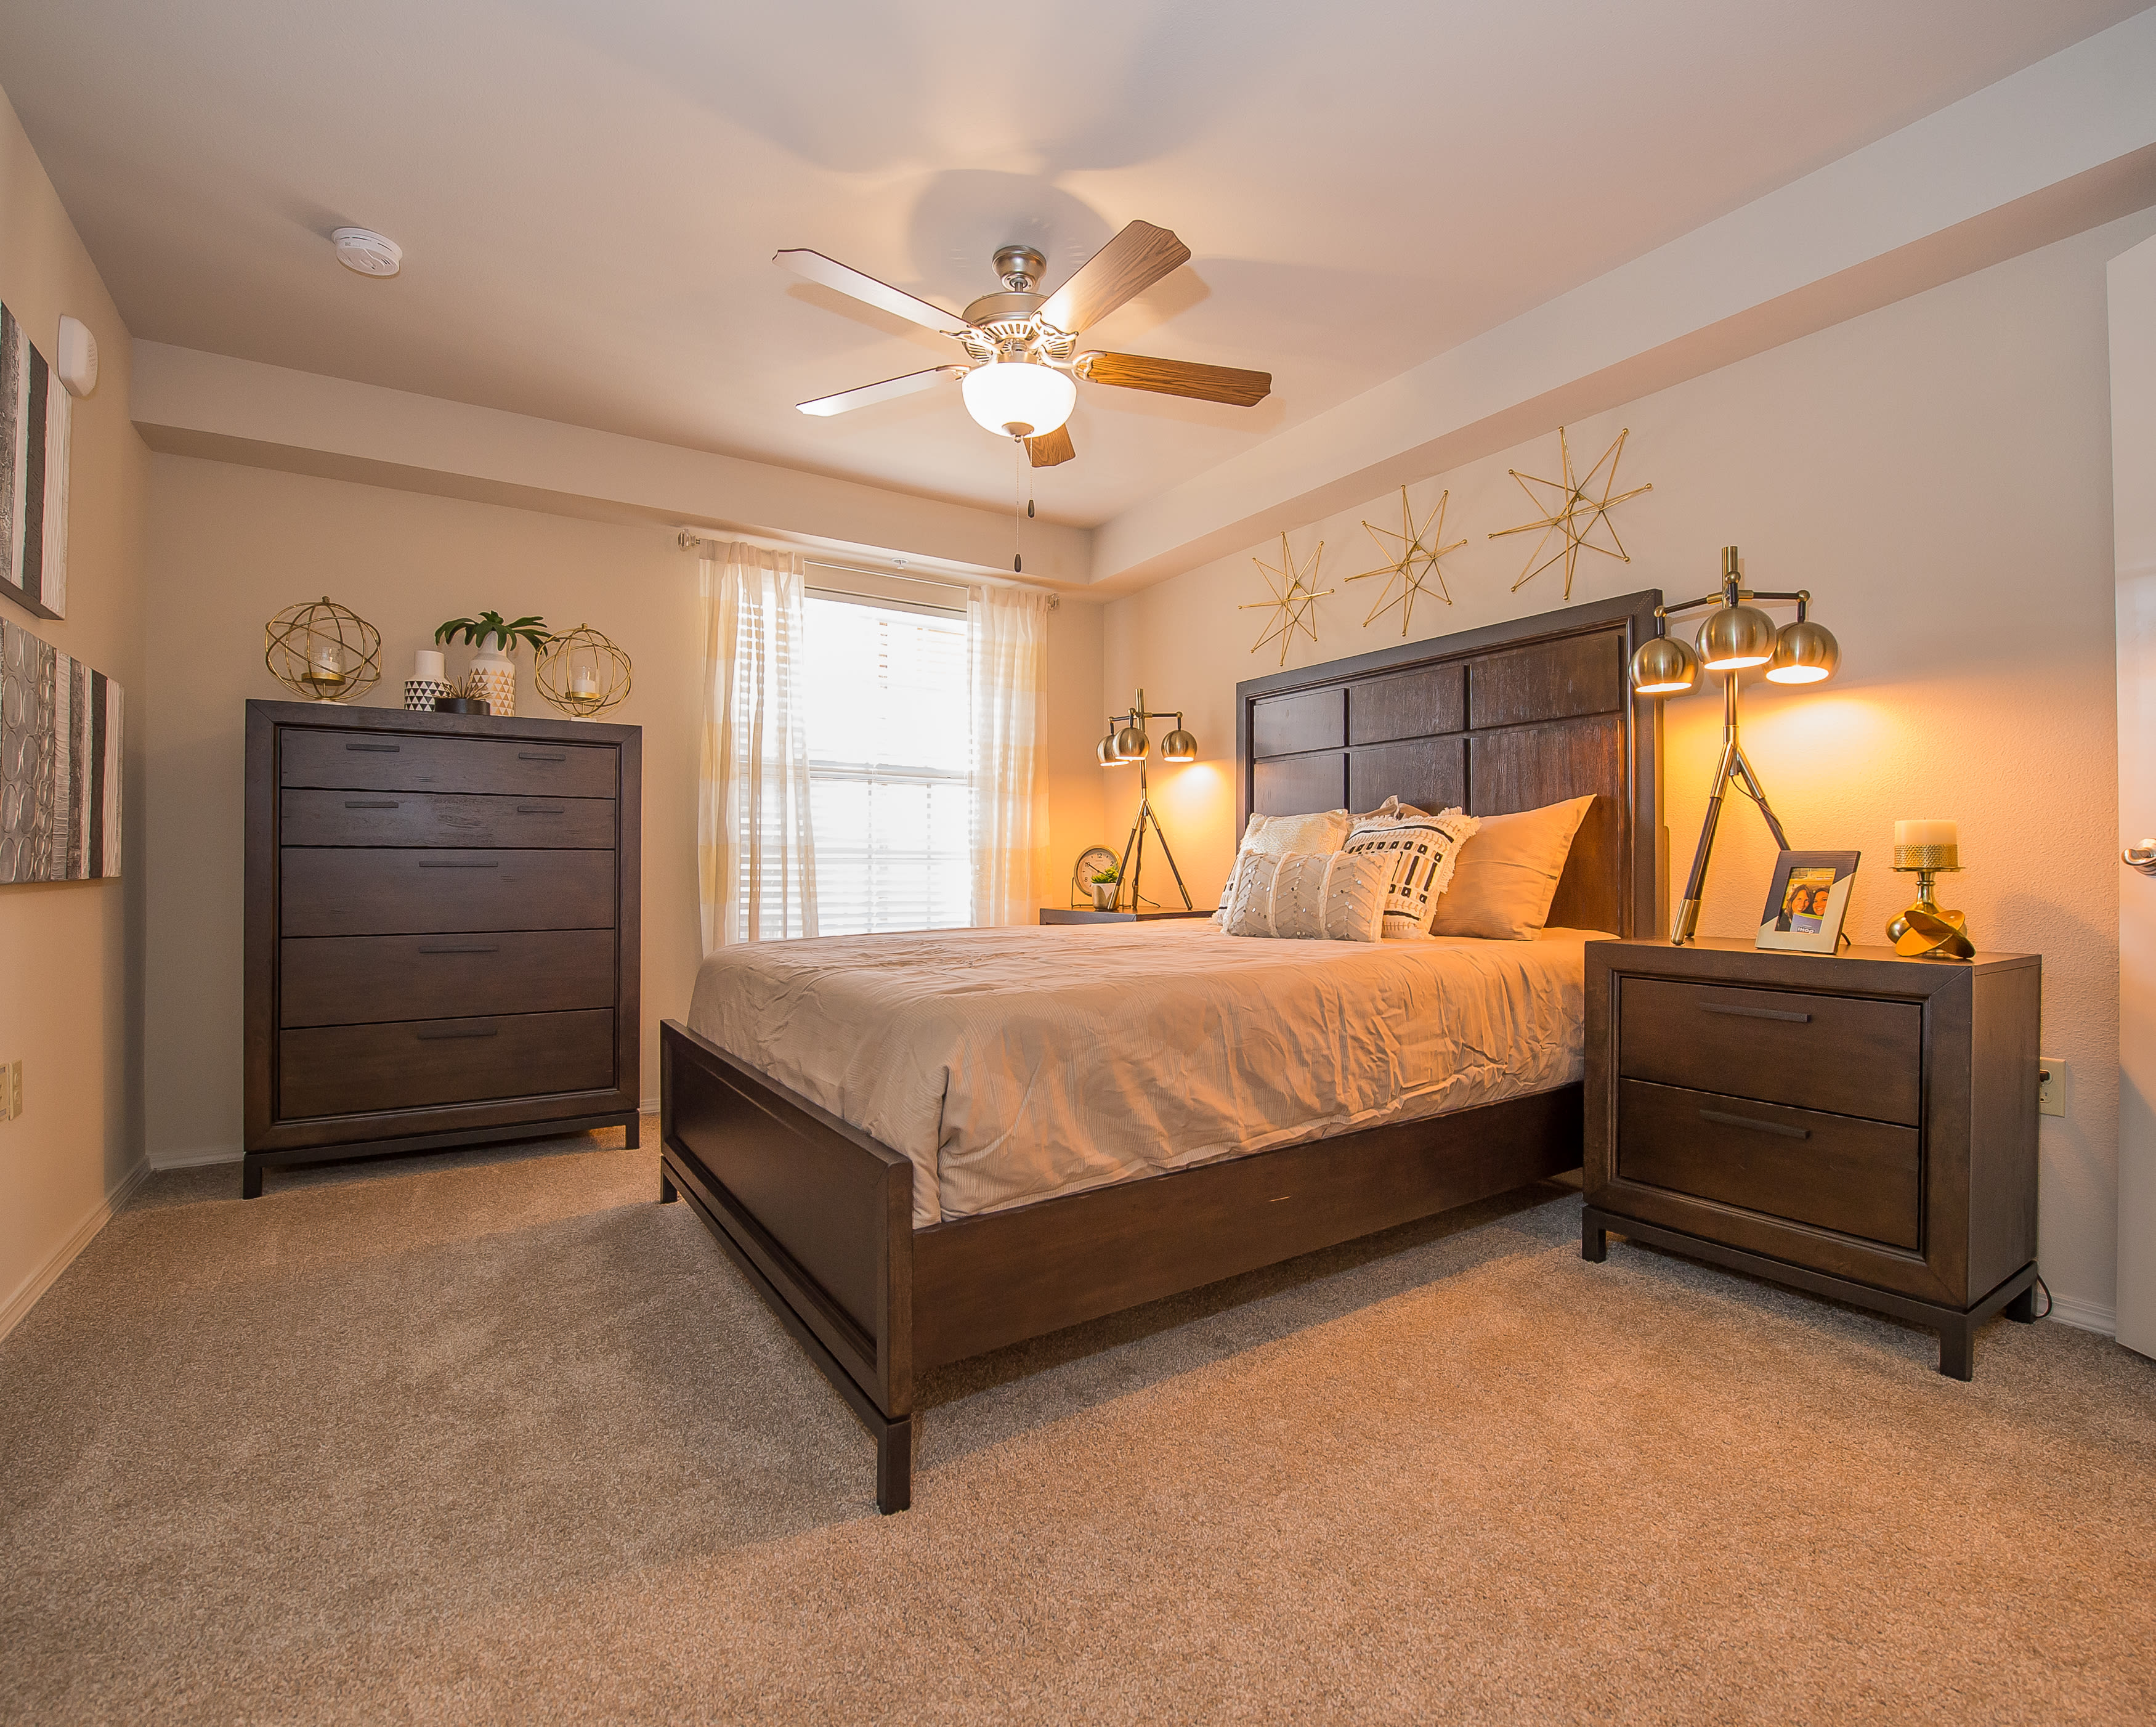 Sun-lit bedroom with ceiling fan at Portico at Friars Creek Apartments